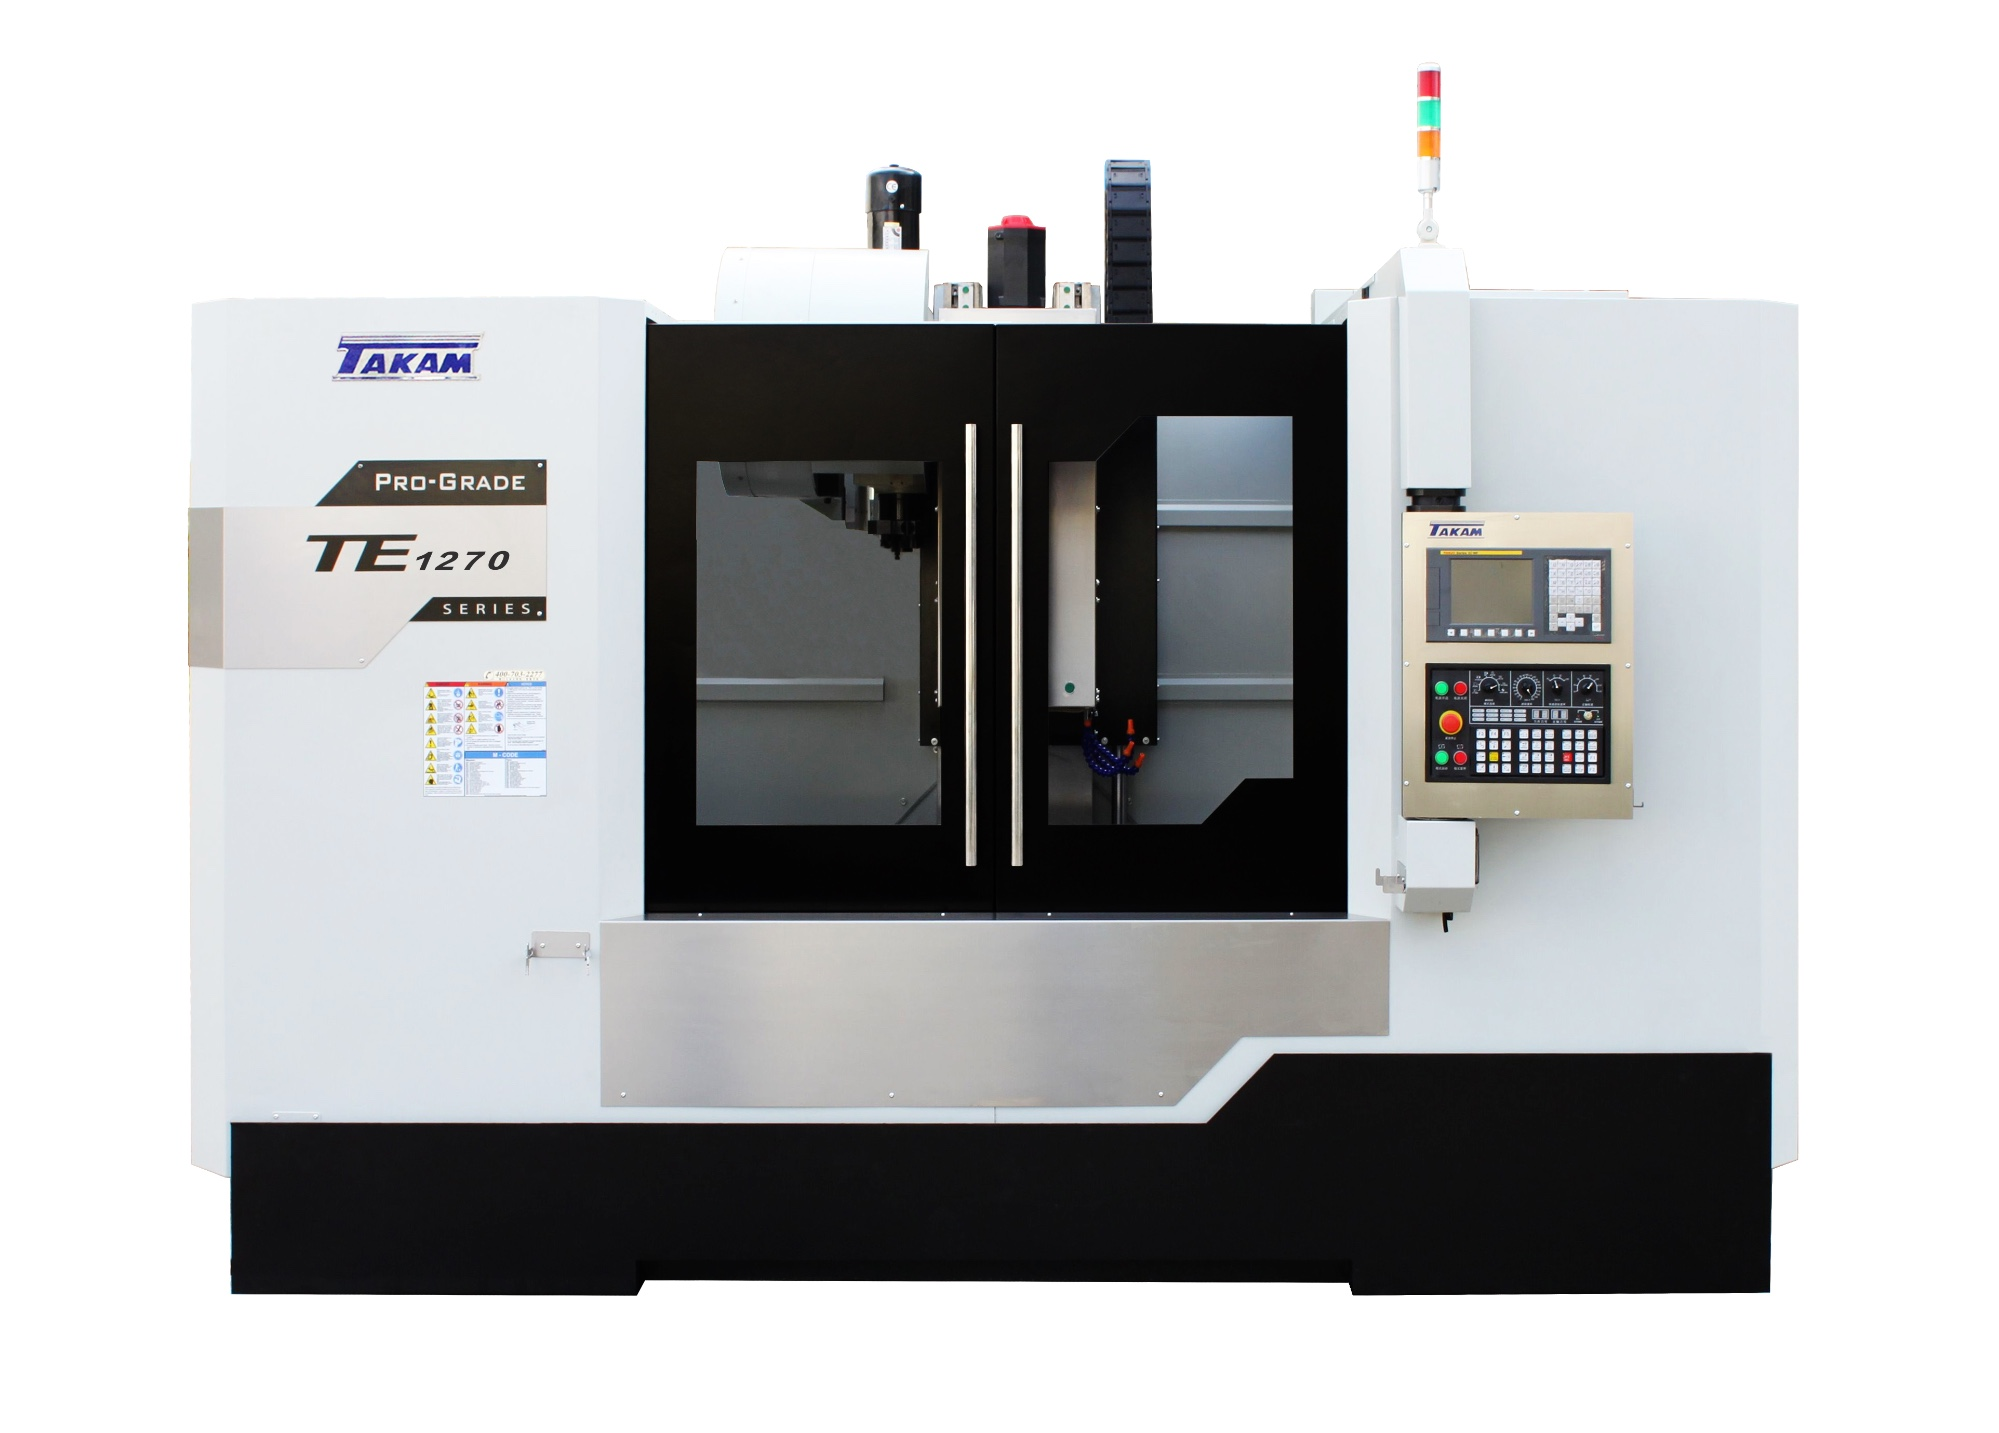 TE-1270 4 Linear Guideway Machine Center Manufacturers, TE-1270 4 Linear Guideway Machine Center Factory, Supply TE-1270 4 Linear Guideway Machine Center